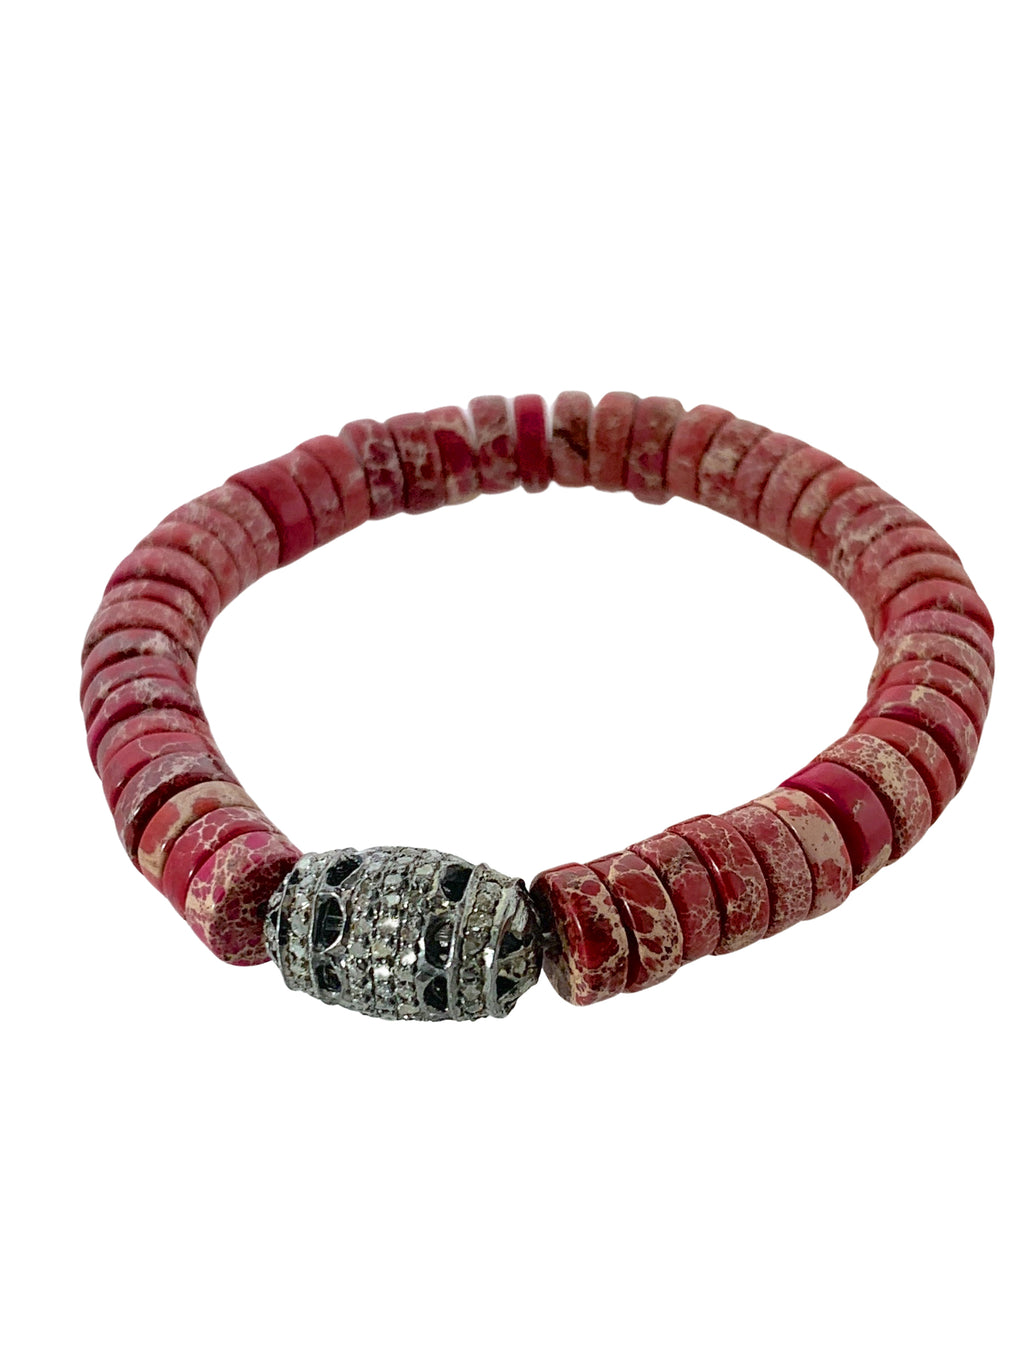 Pave Diamond Bead on Red Jasper Small Beads